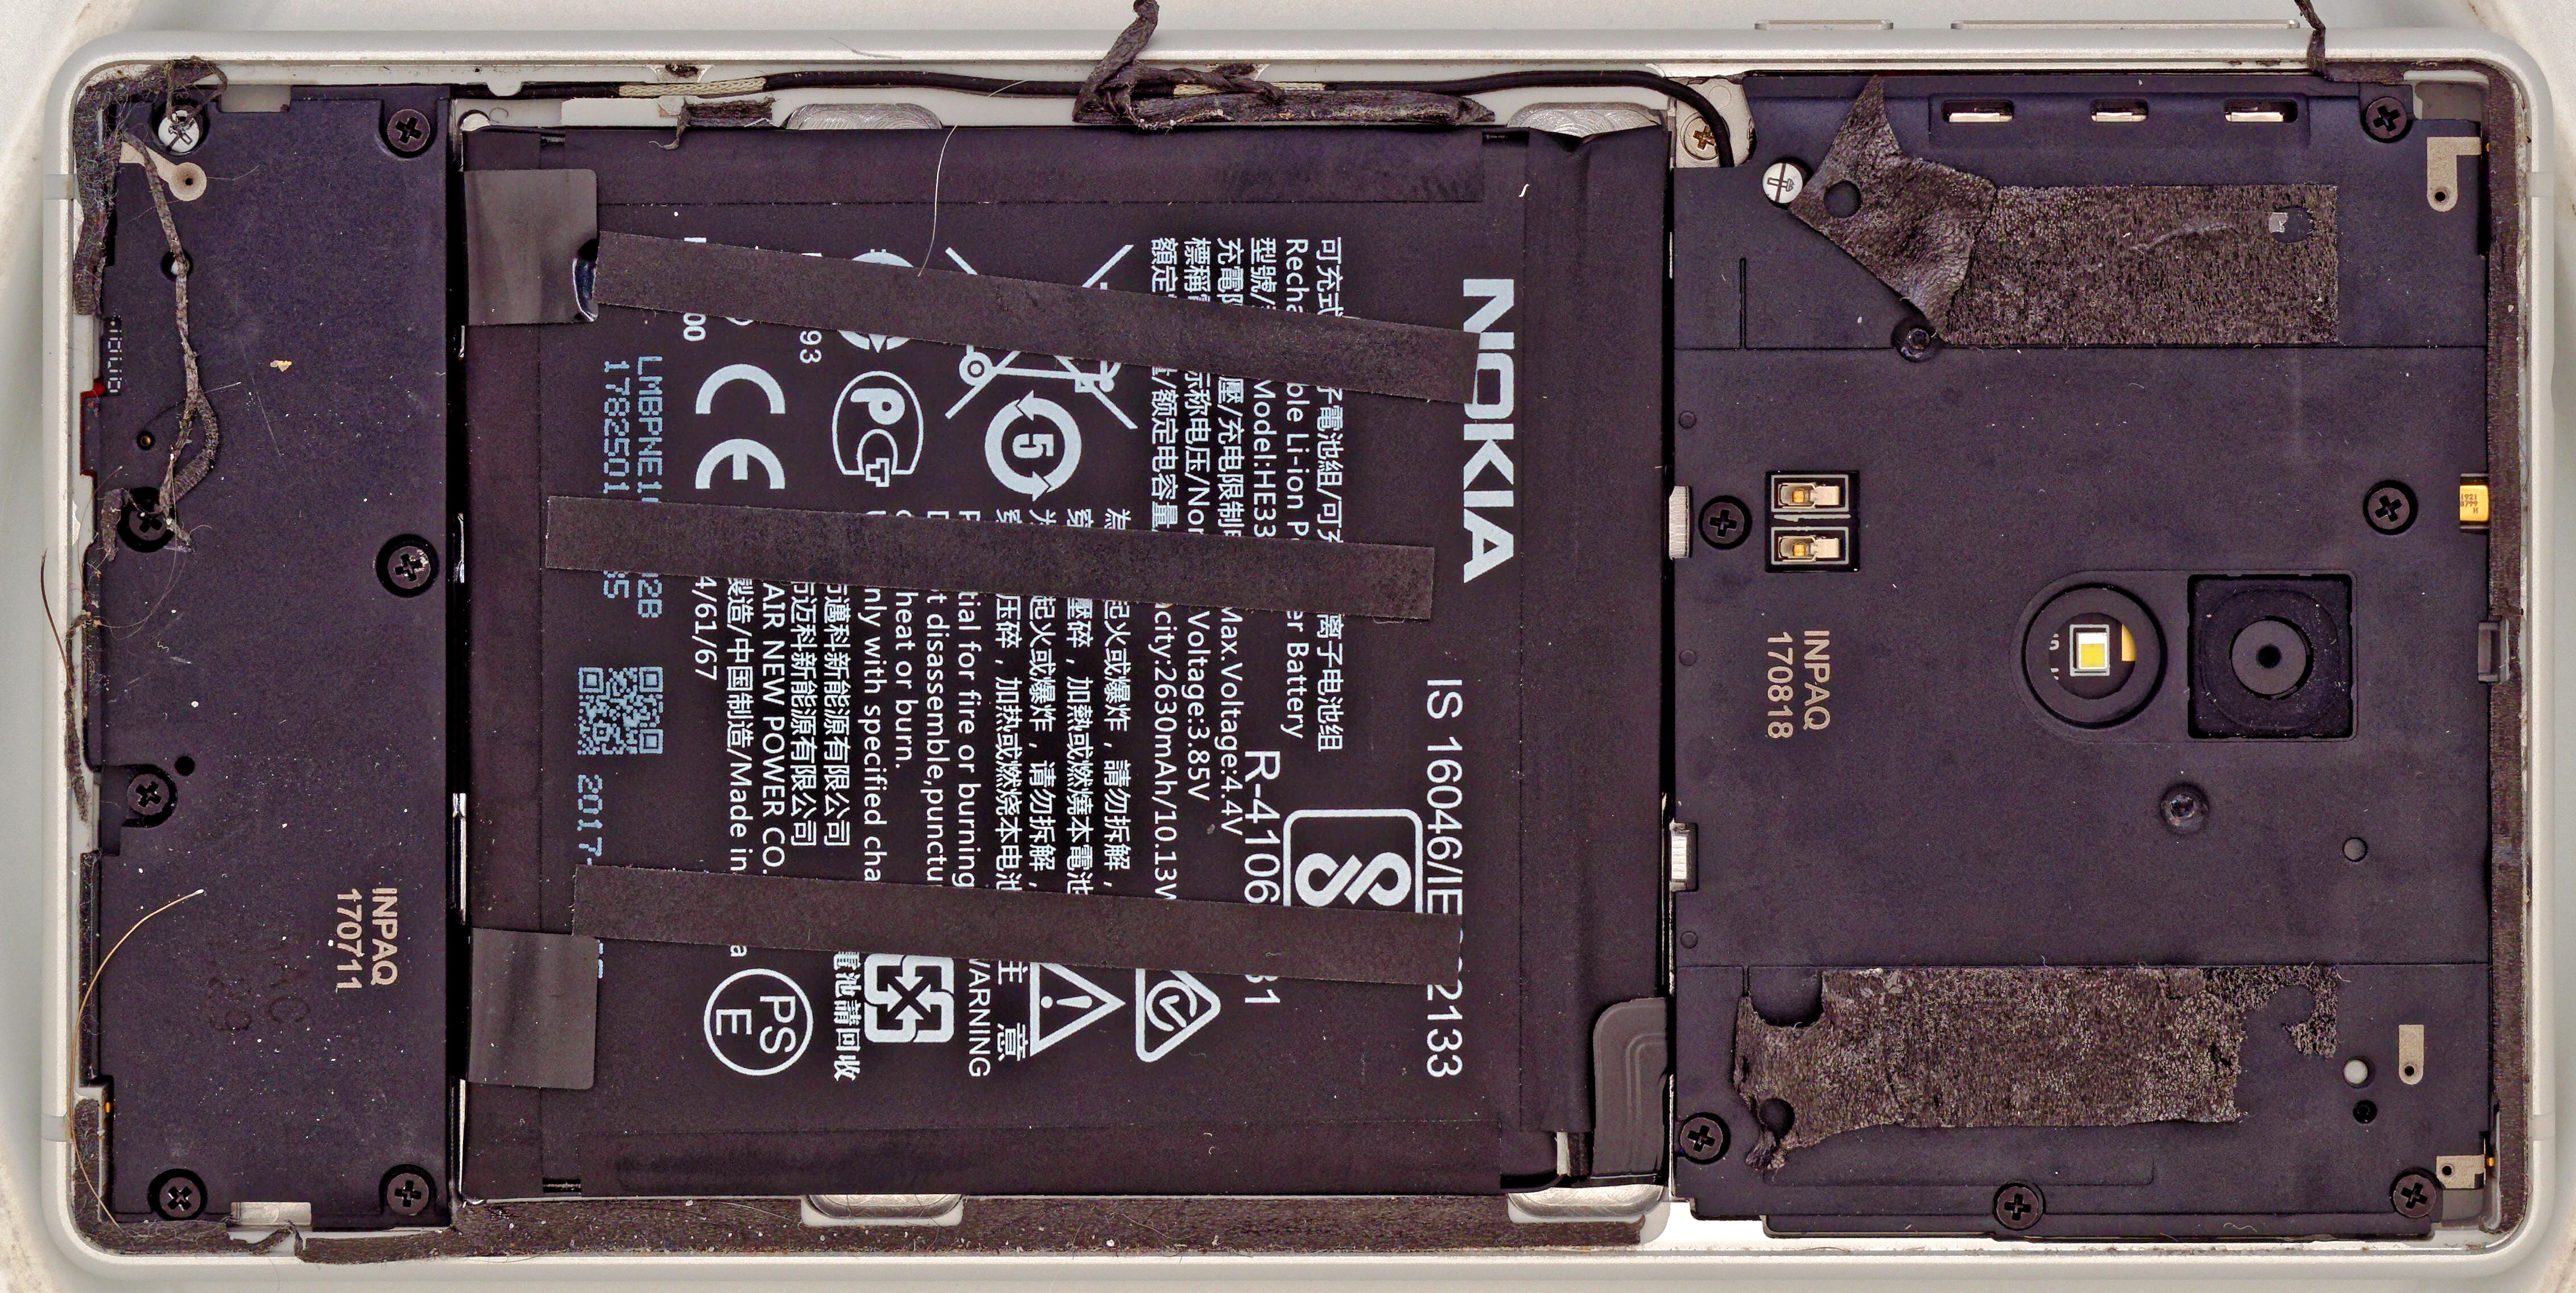 This should be Nokia-3-4.jpeg.  Is it missing?